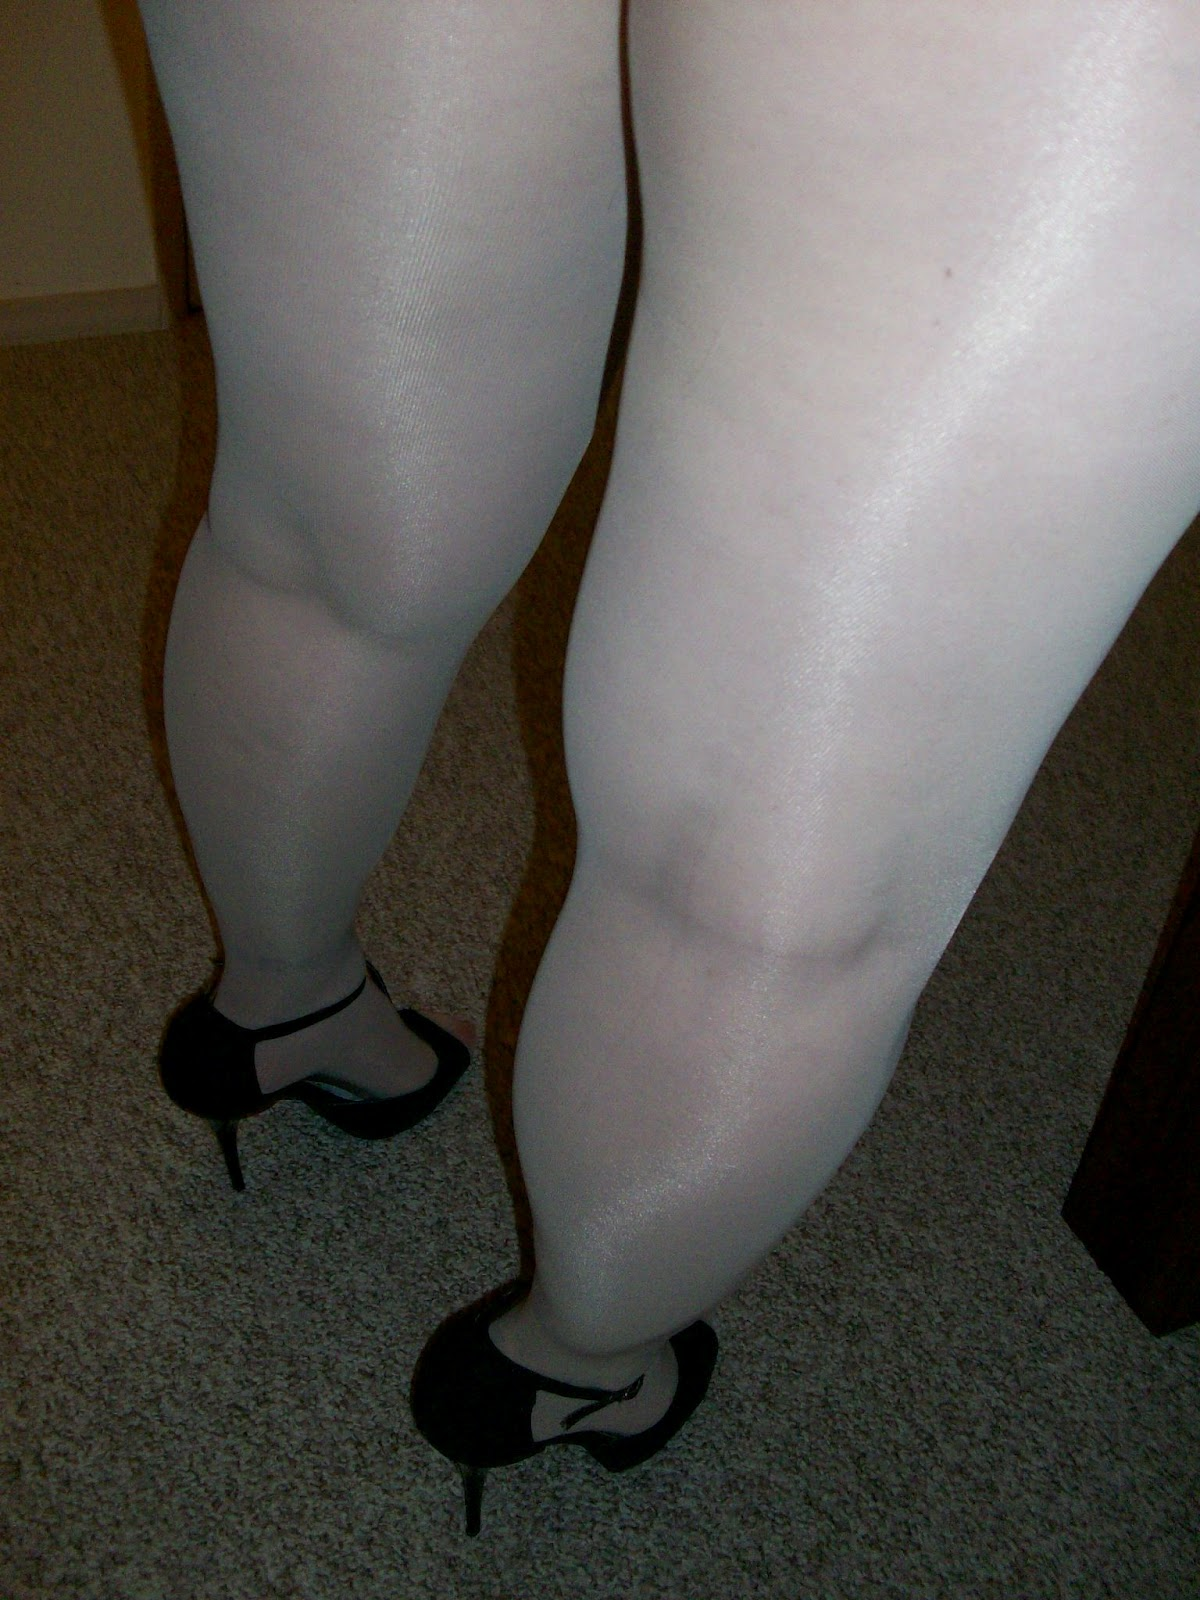 Results match worn pantyhose sale started